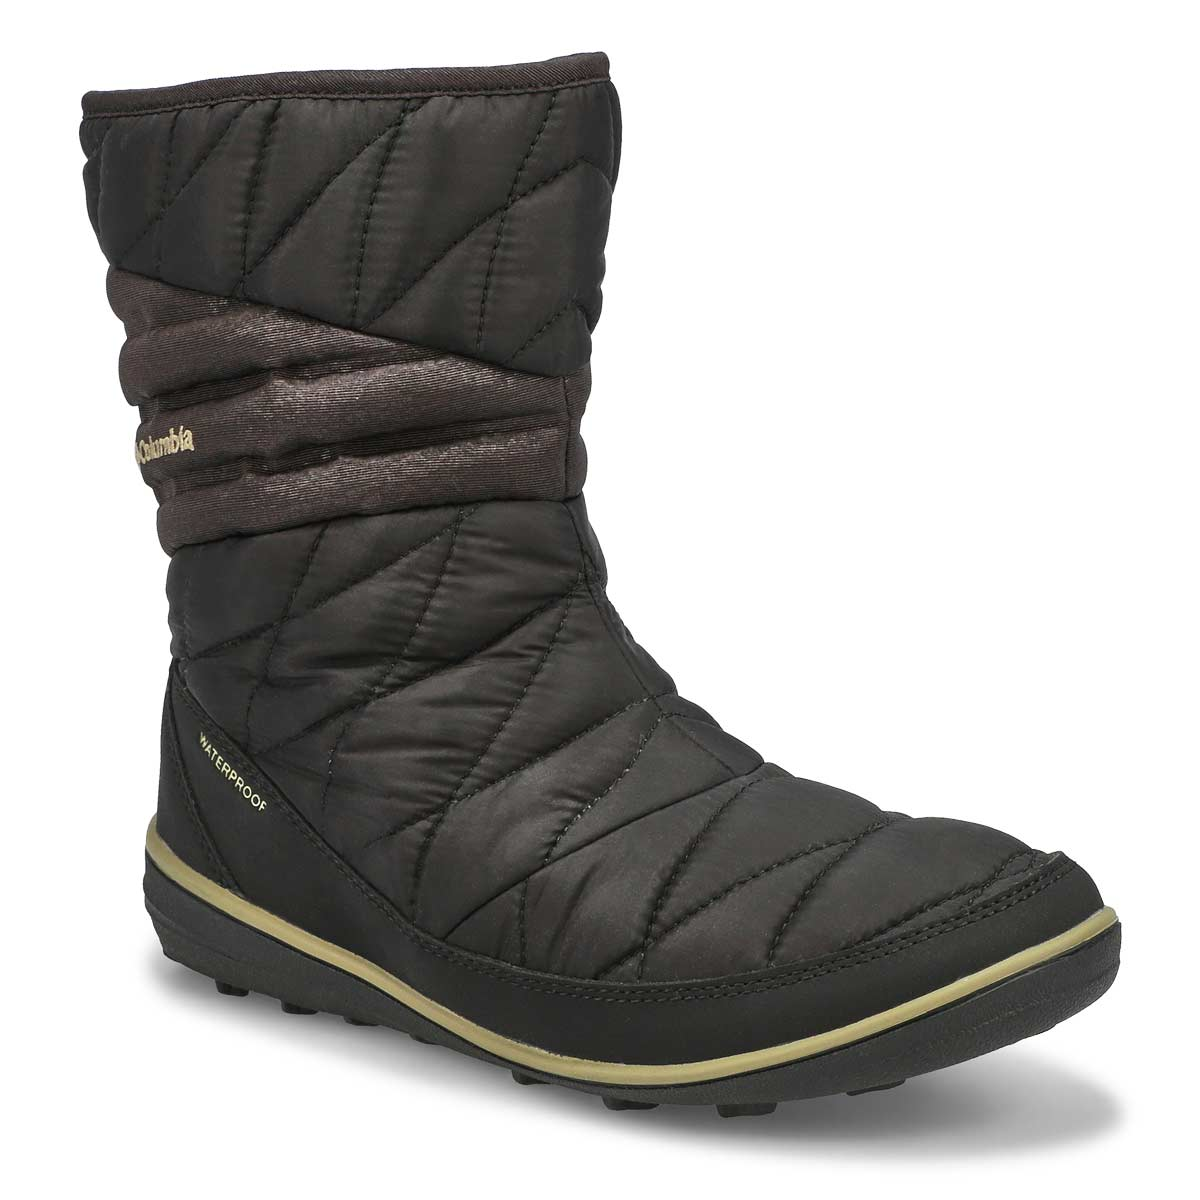 Women's HEAVENLY SLIP II OmniHeat blk wp boots